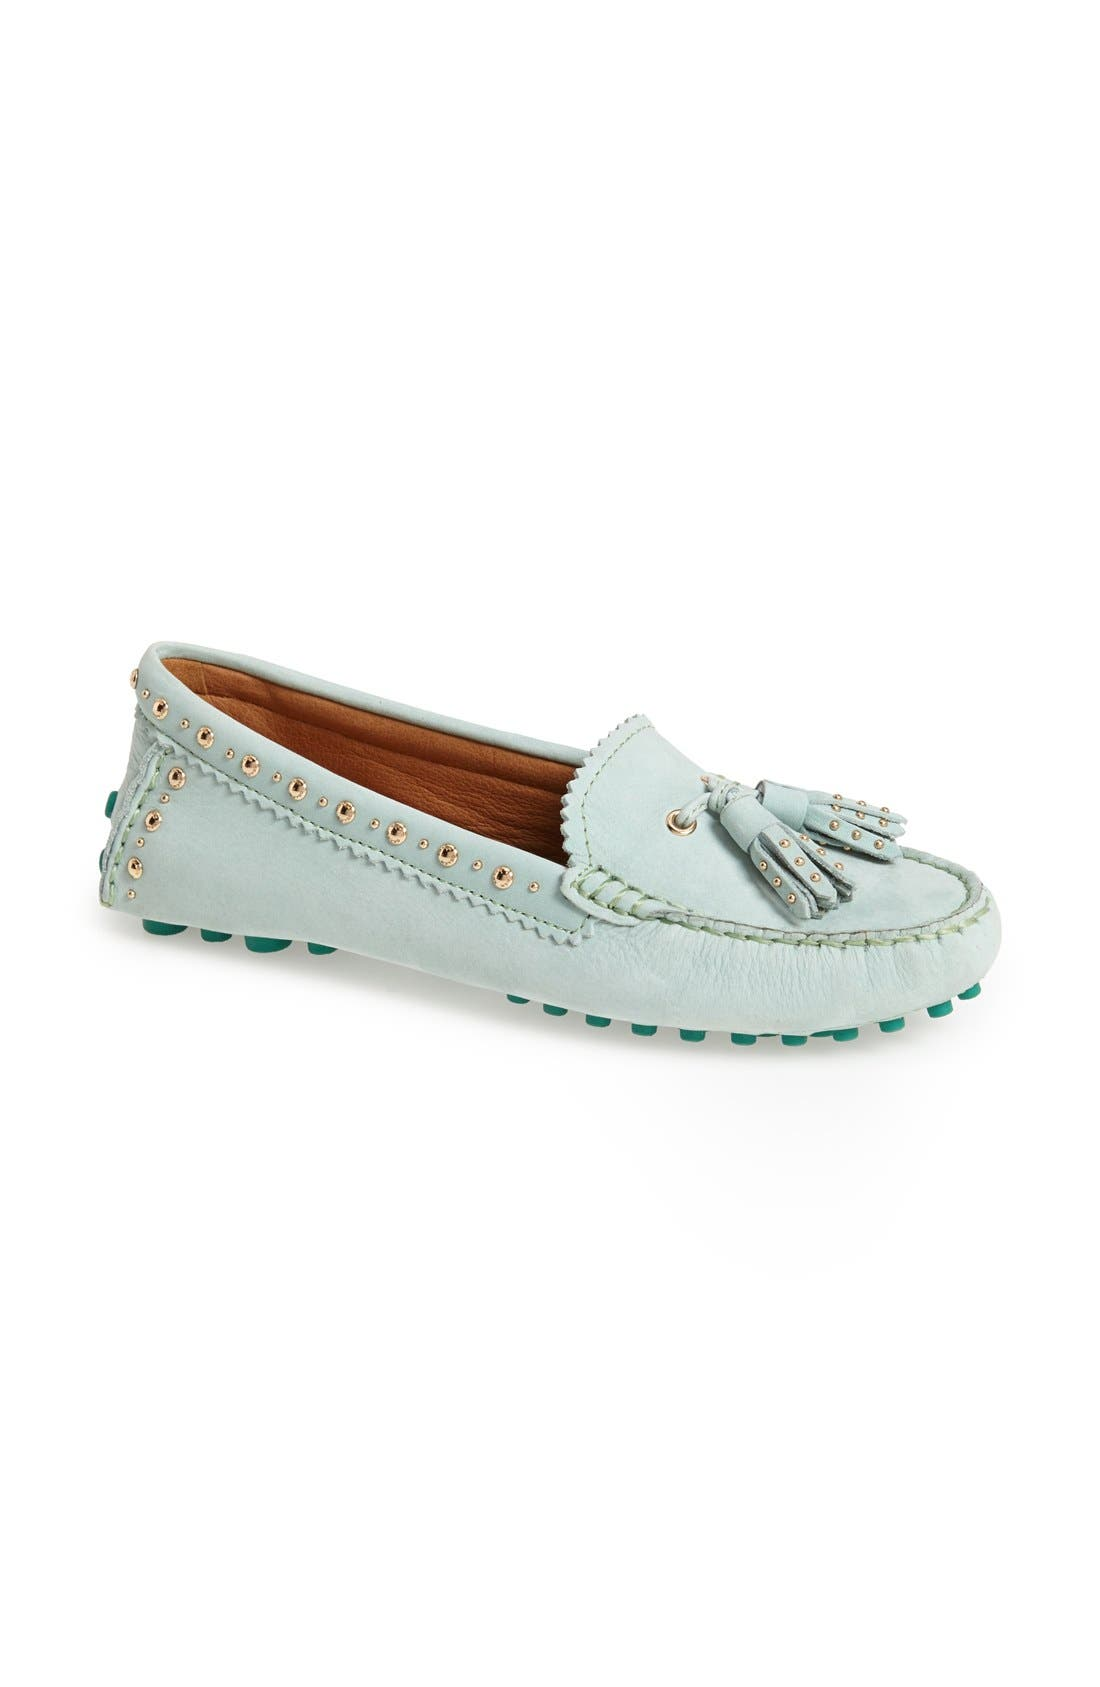 Main Image - COACH 'Norfolk' Leather Driving Loafer (Women)